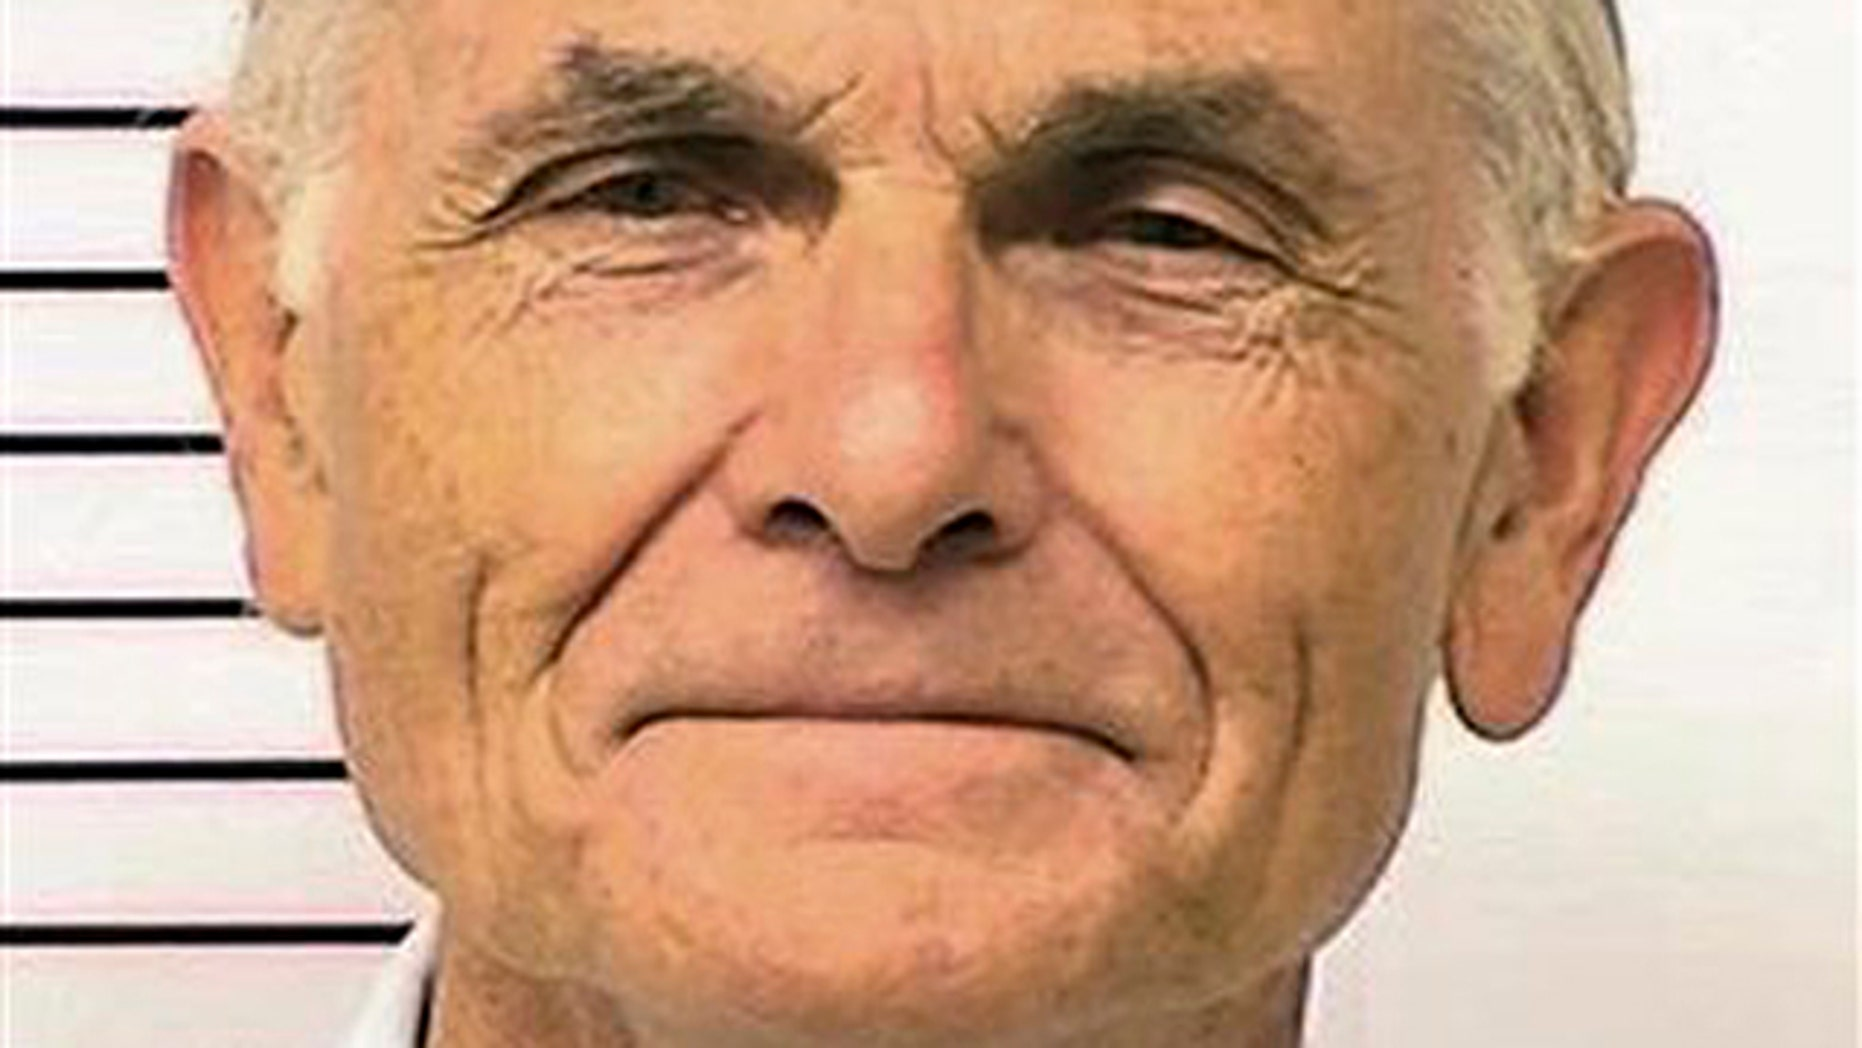 FILE: Gov. Jerry Brown reversed a parole board and denied the release of Bruce Davis, a former Charles Manson follower who has served more than 40 years in prison.